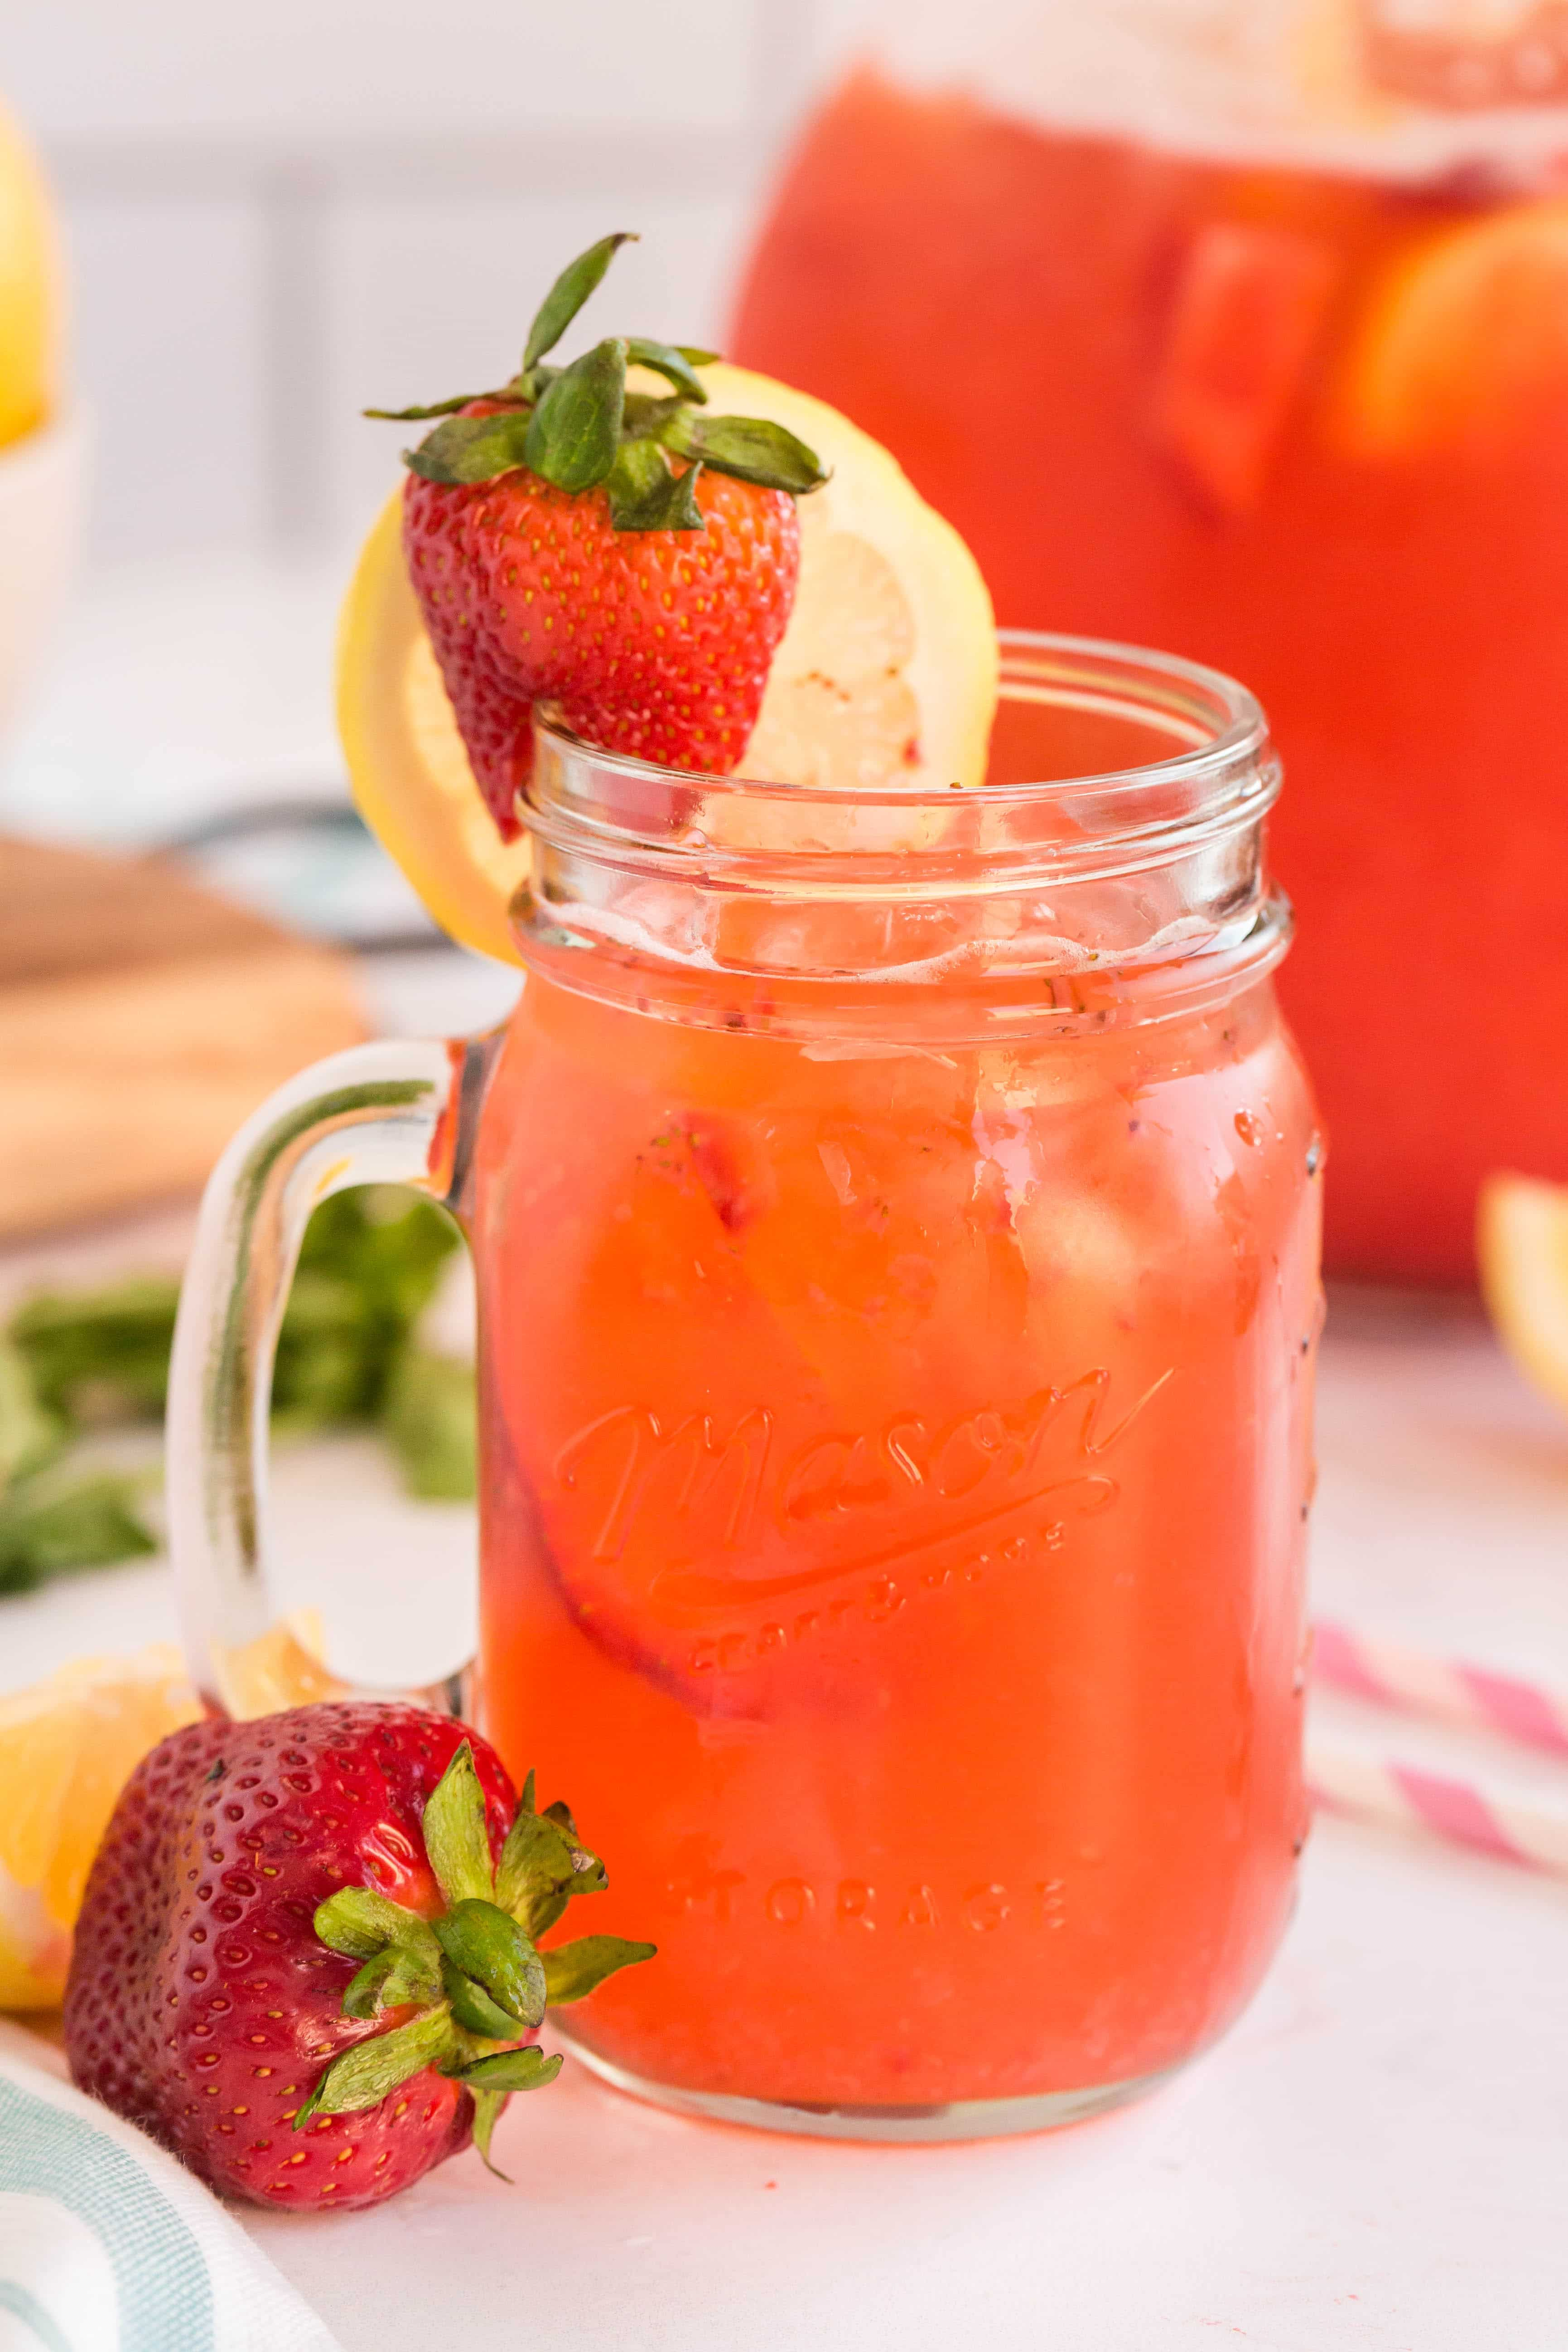 single serving of strawberry lemonade